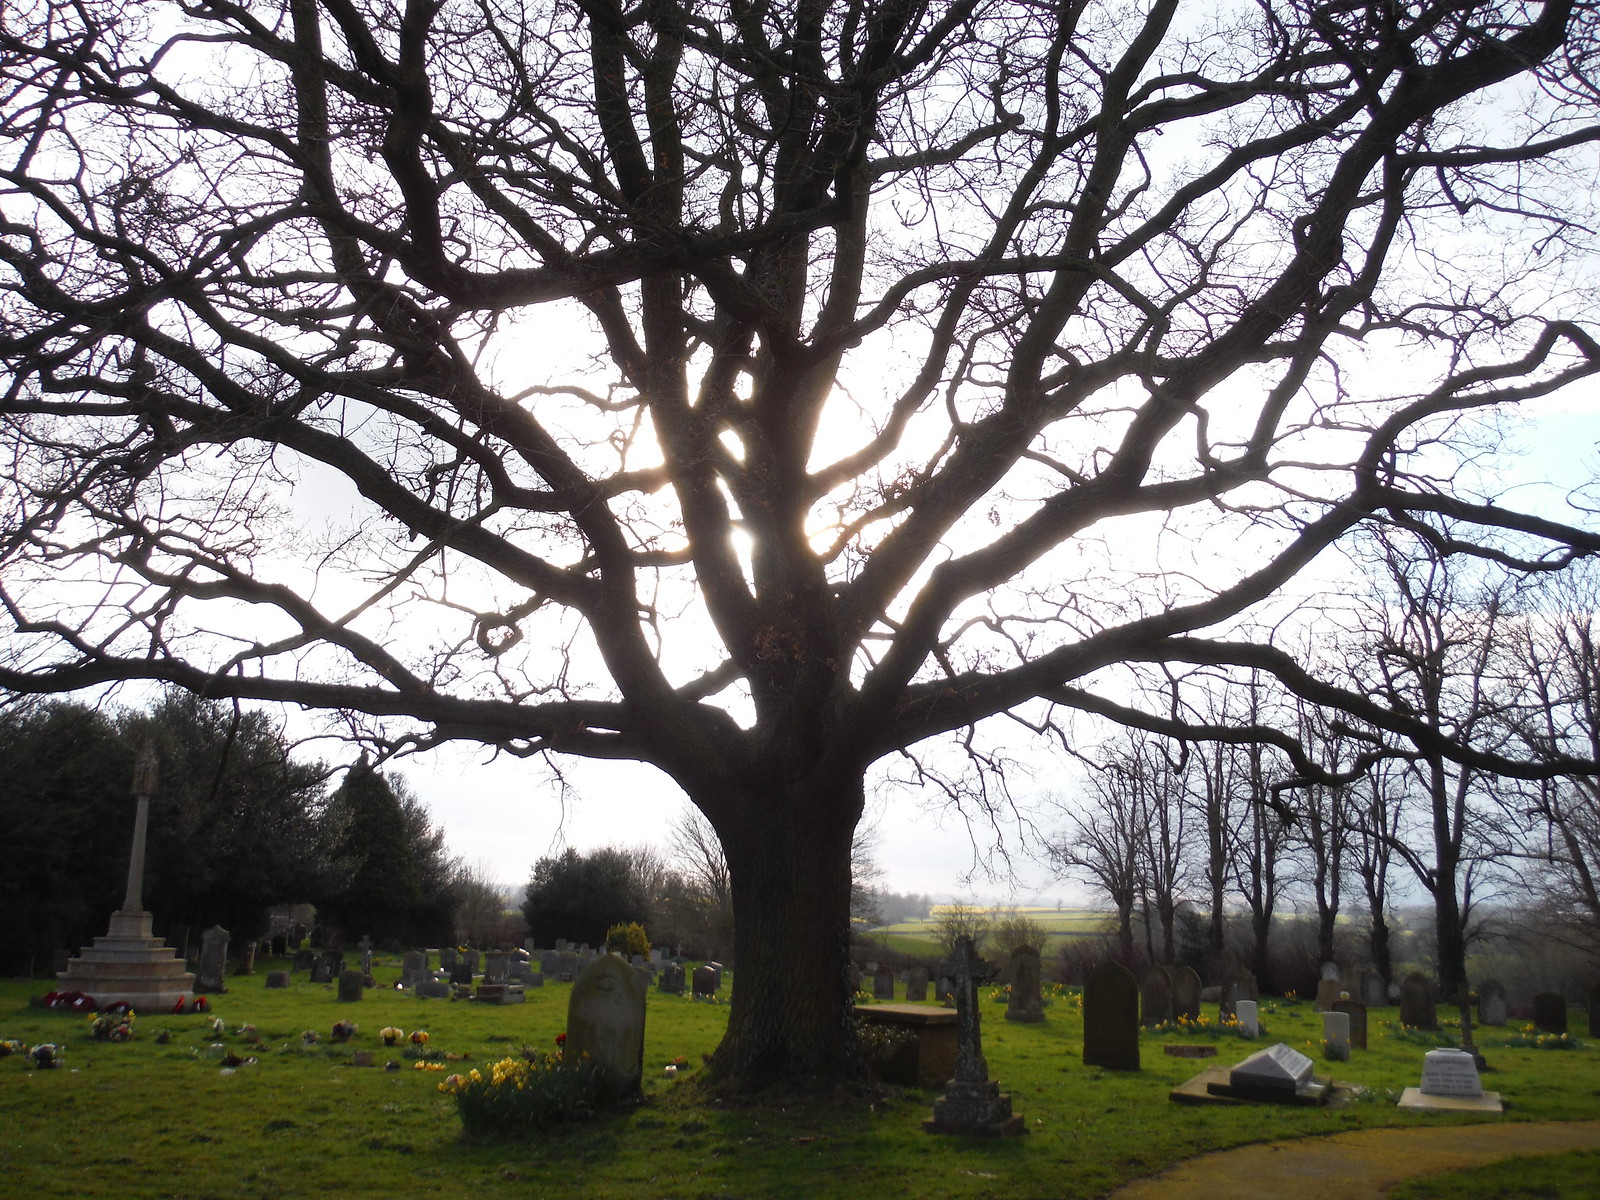 Tree in Churchyard, All Saints, Wing SWC Walk Cheddington to Leighton Buzzard